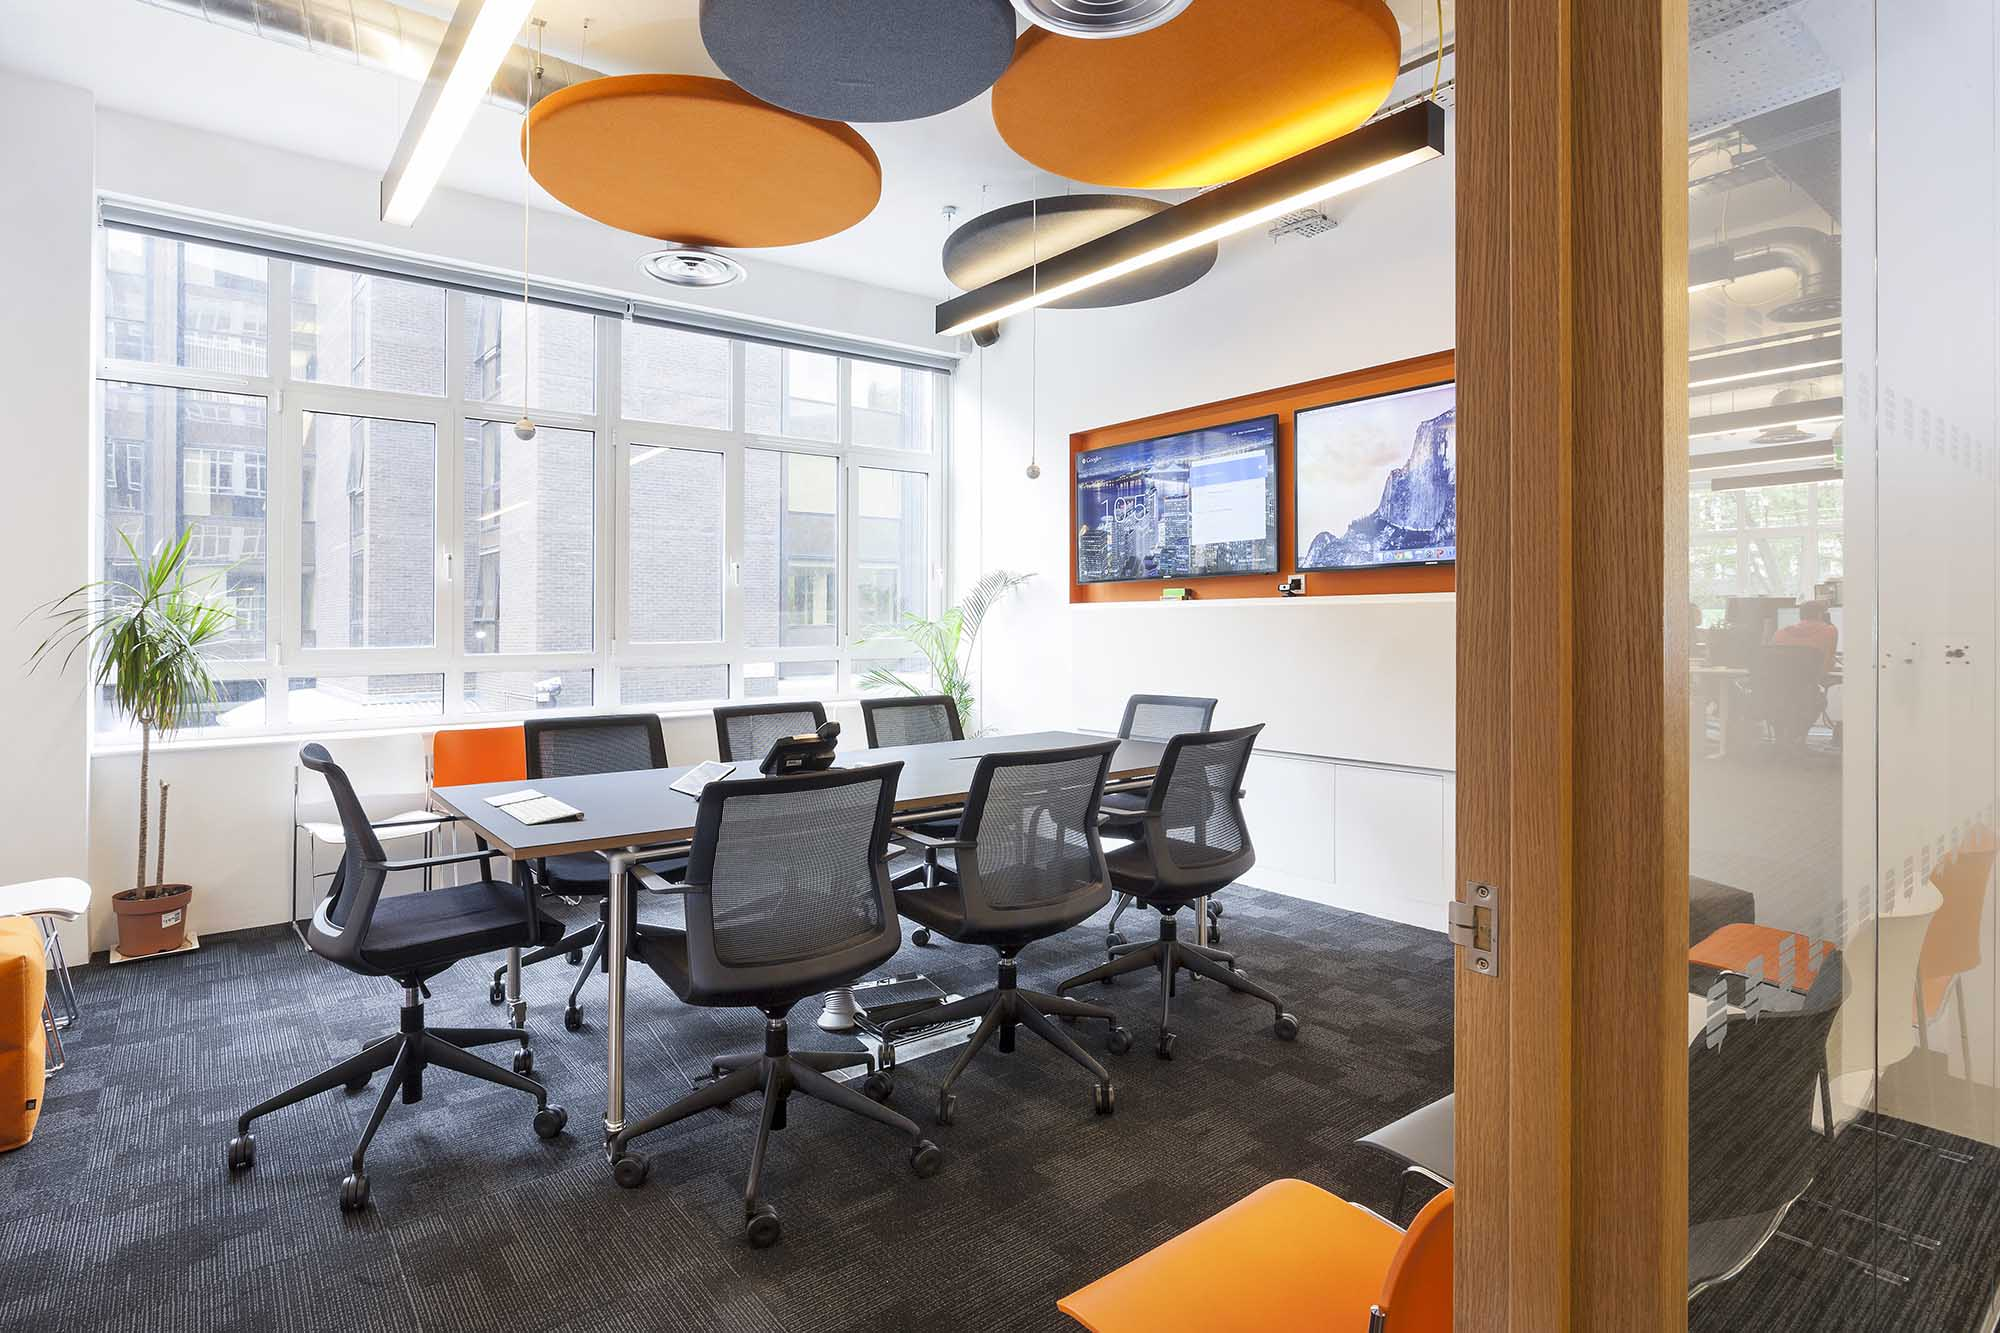 Stack Exchange Meeting Room